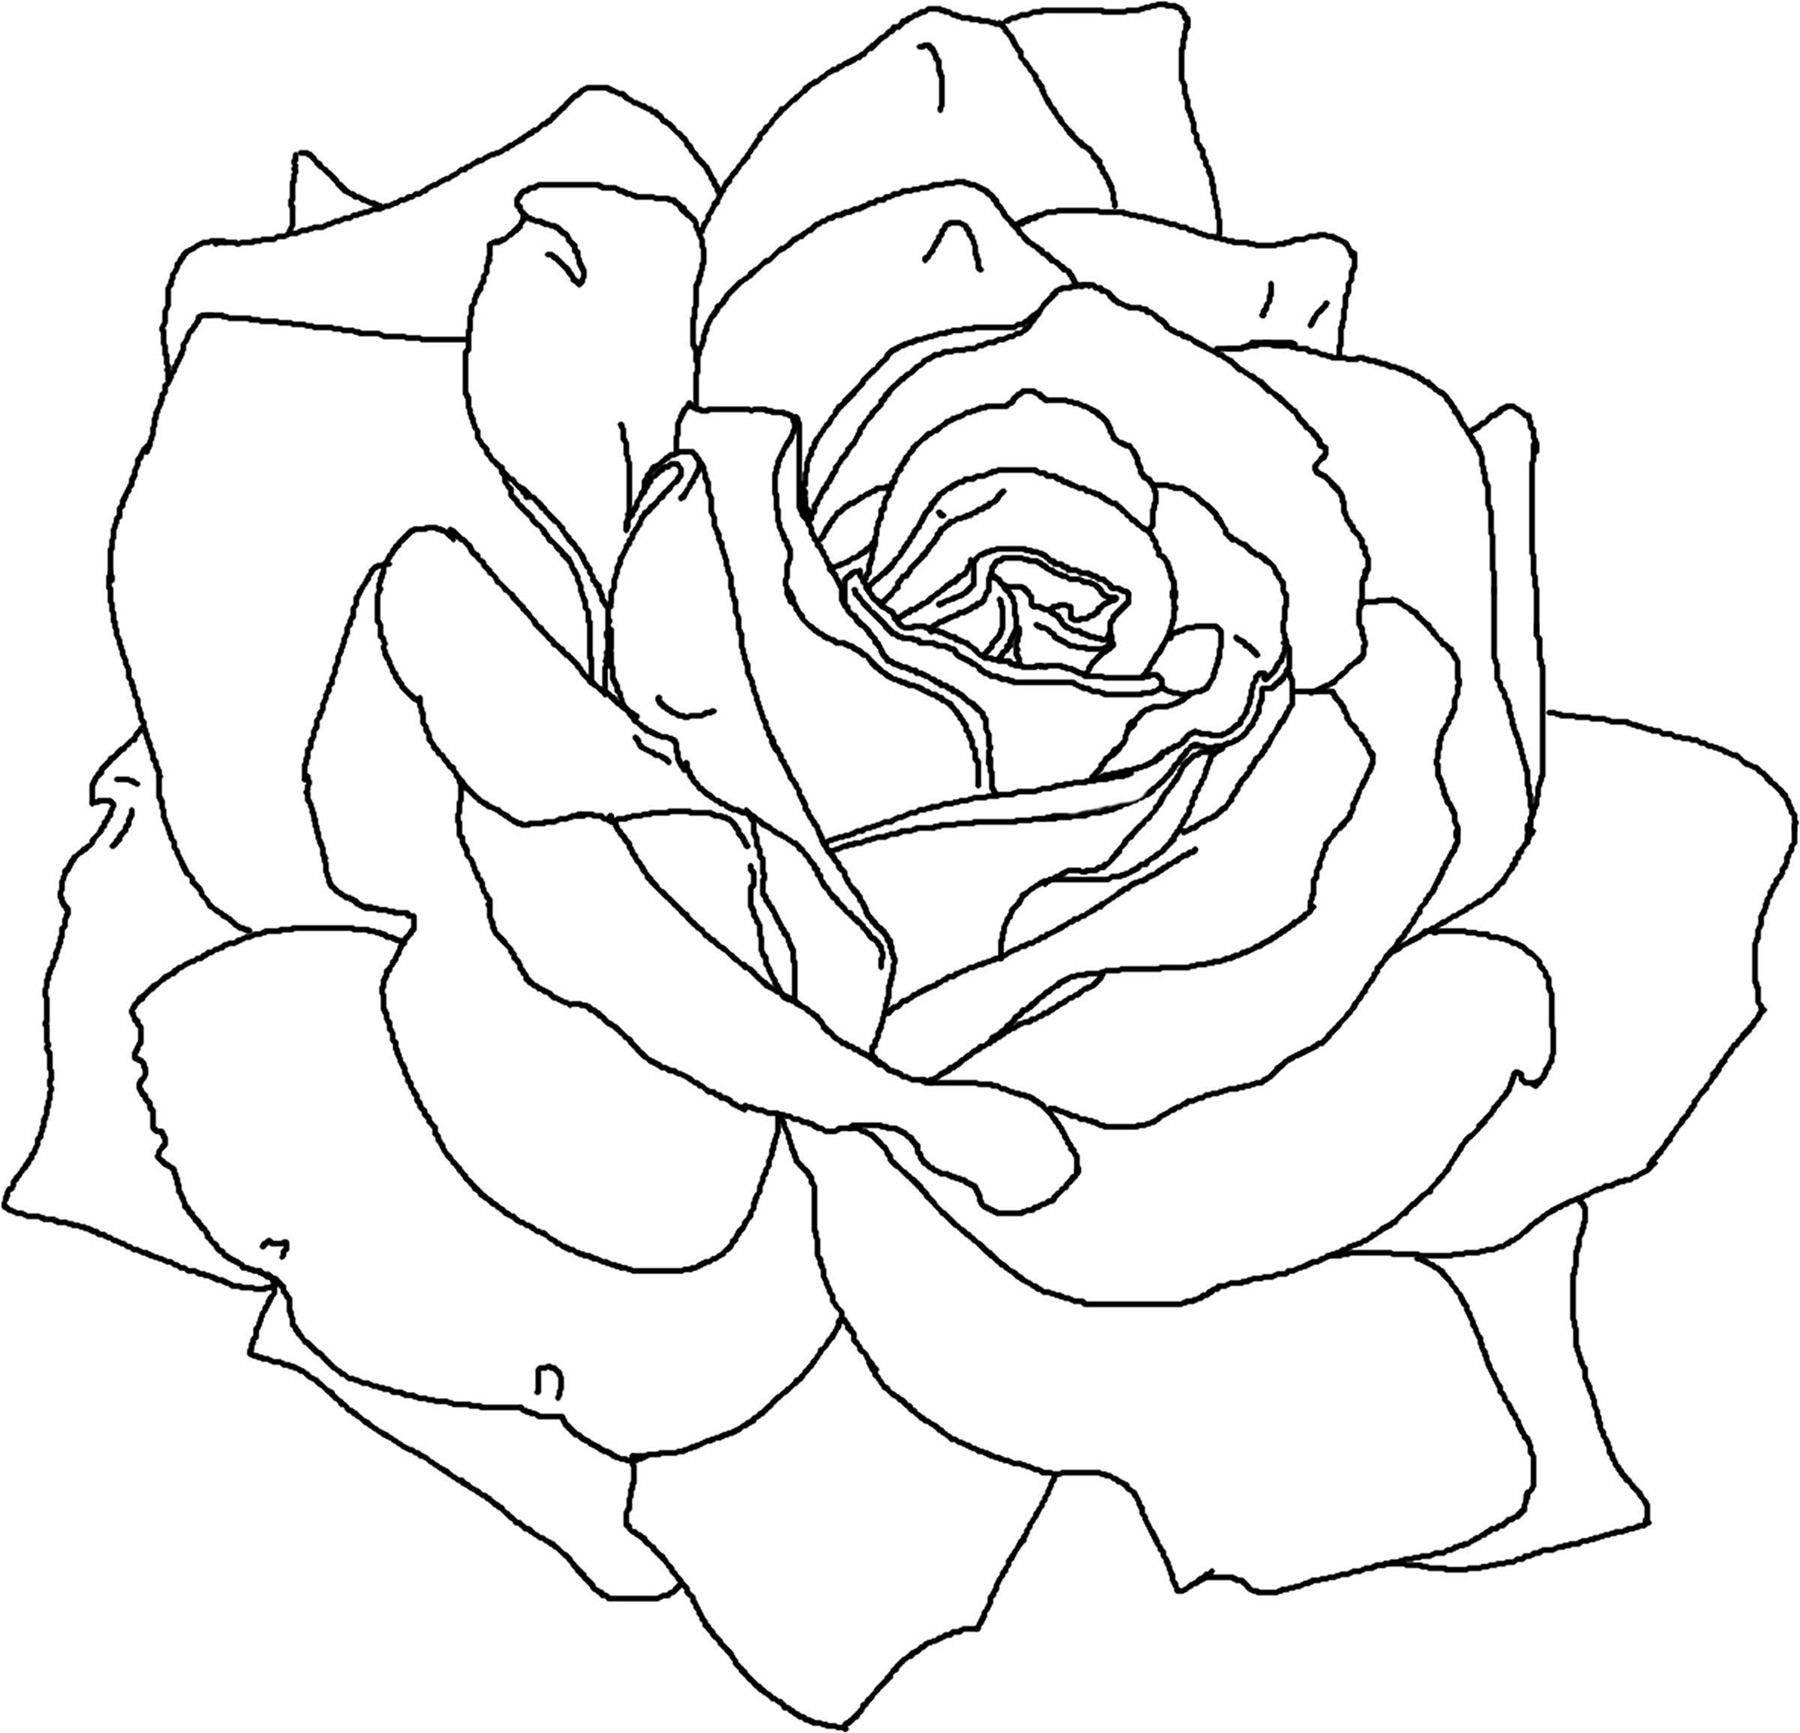 Best ideas about Free Printable Of Roses Coloring Pages For Girls Pinterest. . Save or Pin Free Printable Flower Coloring Pages For Kids Best Now.